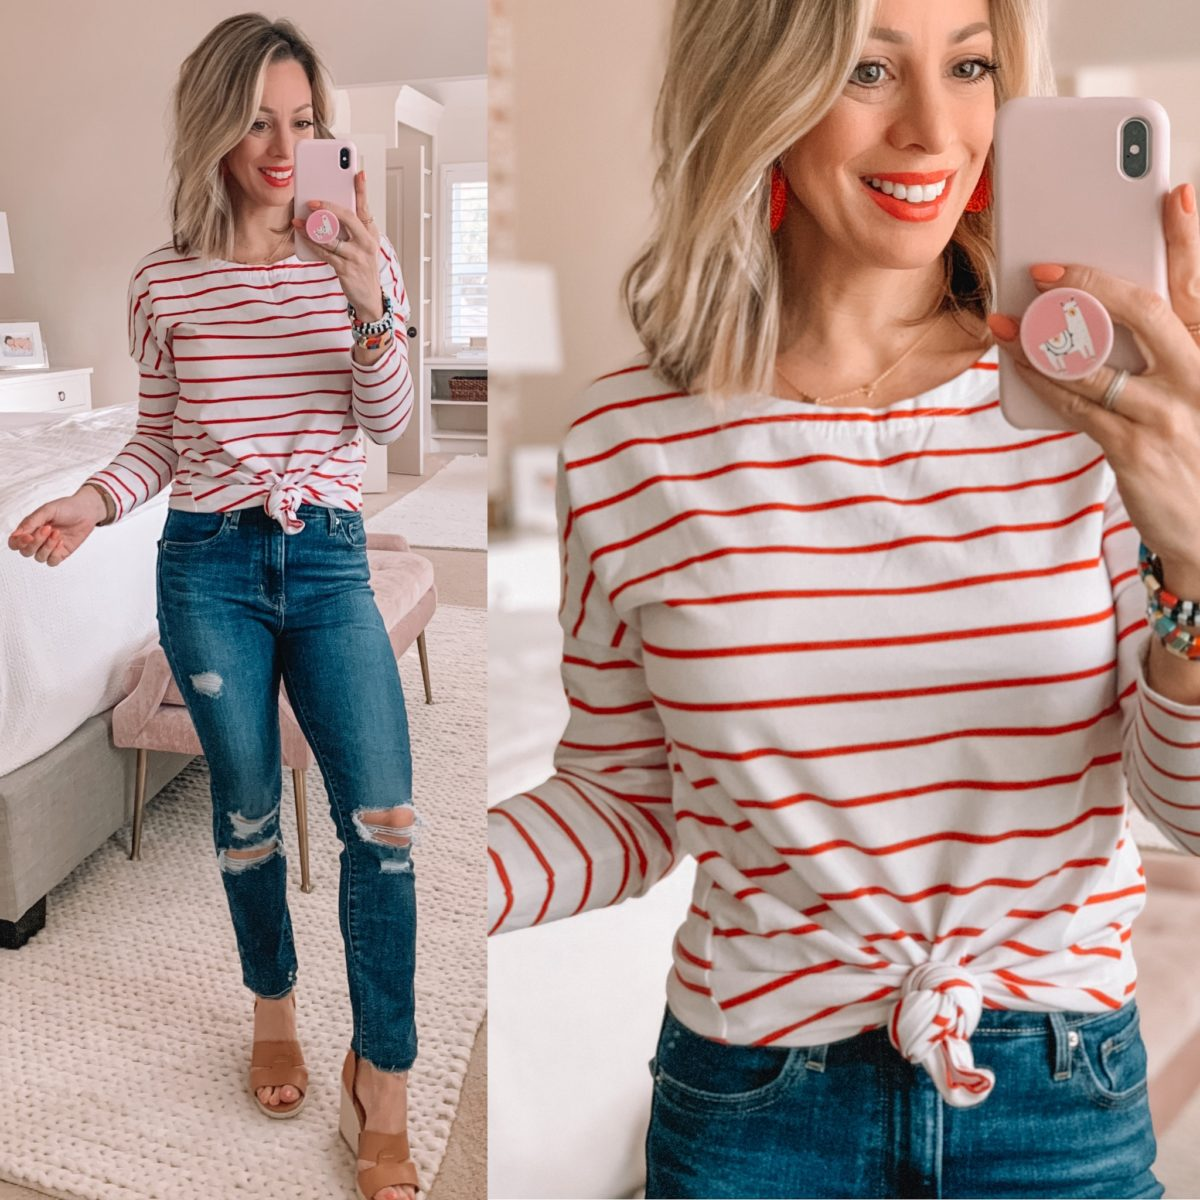 Red and White Stripe Top, Distressed Skinny Jeans, Wedges, Enamel bracelets